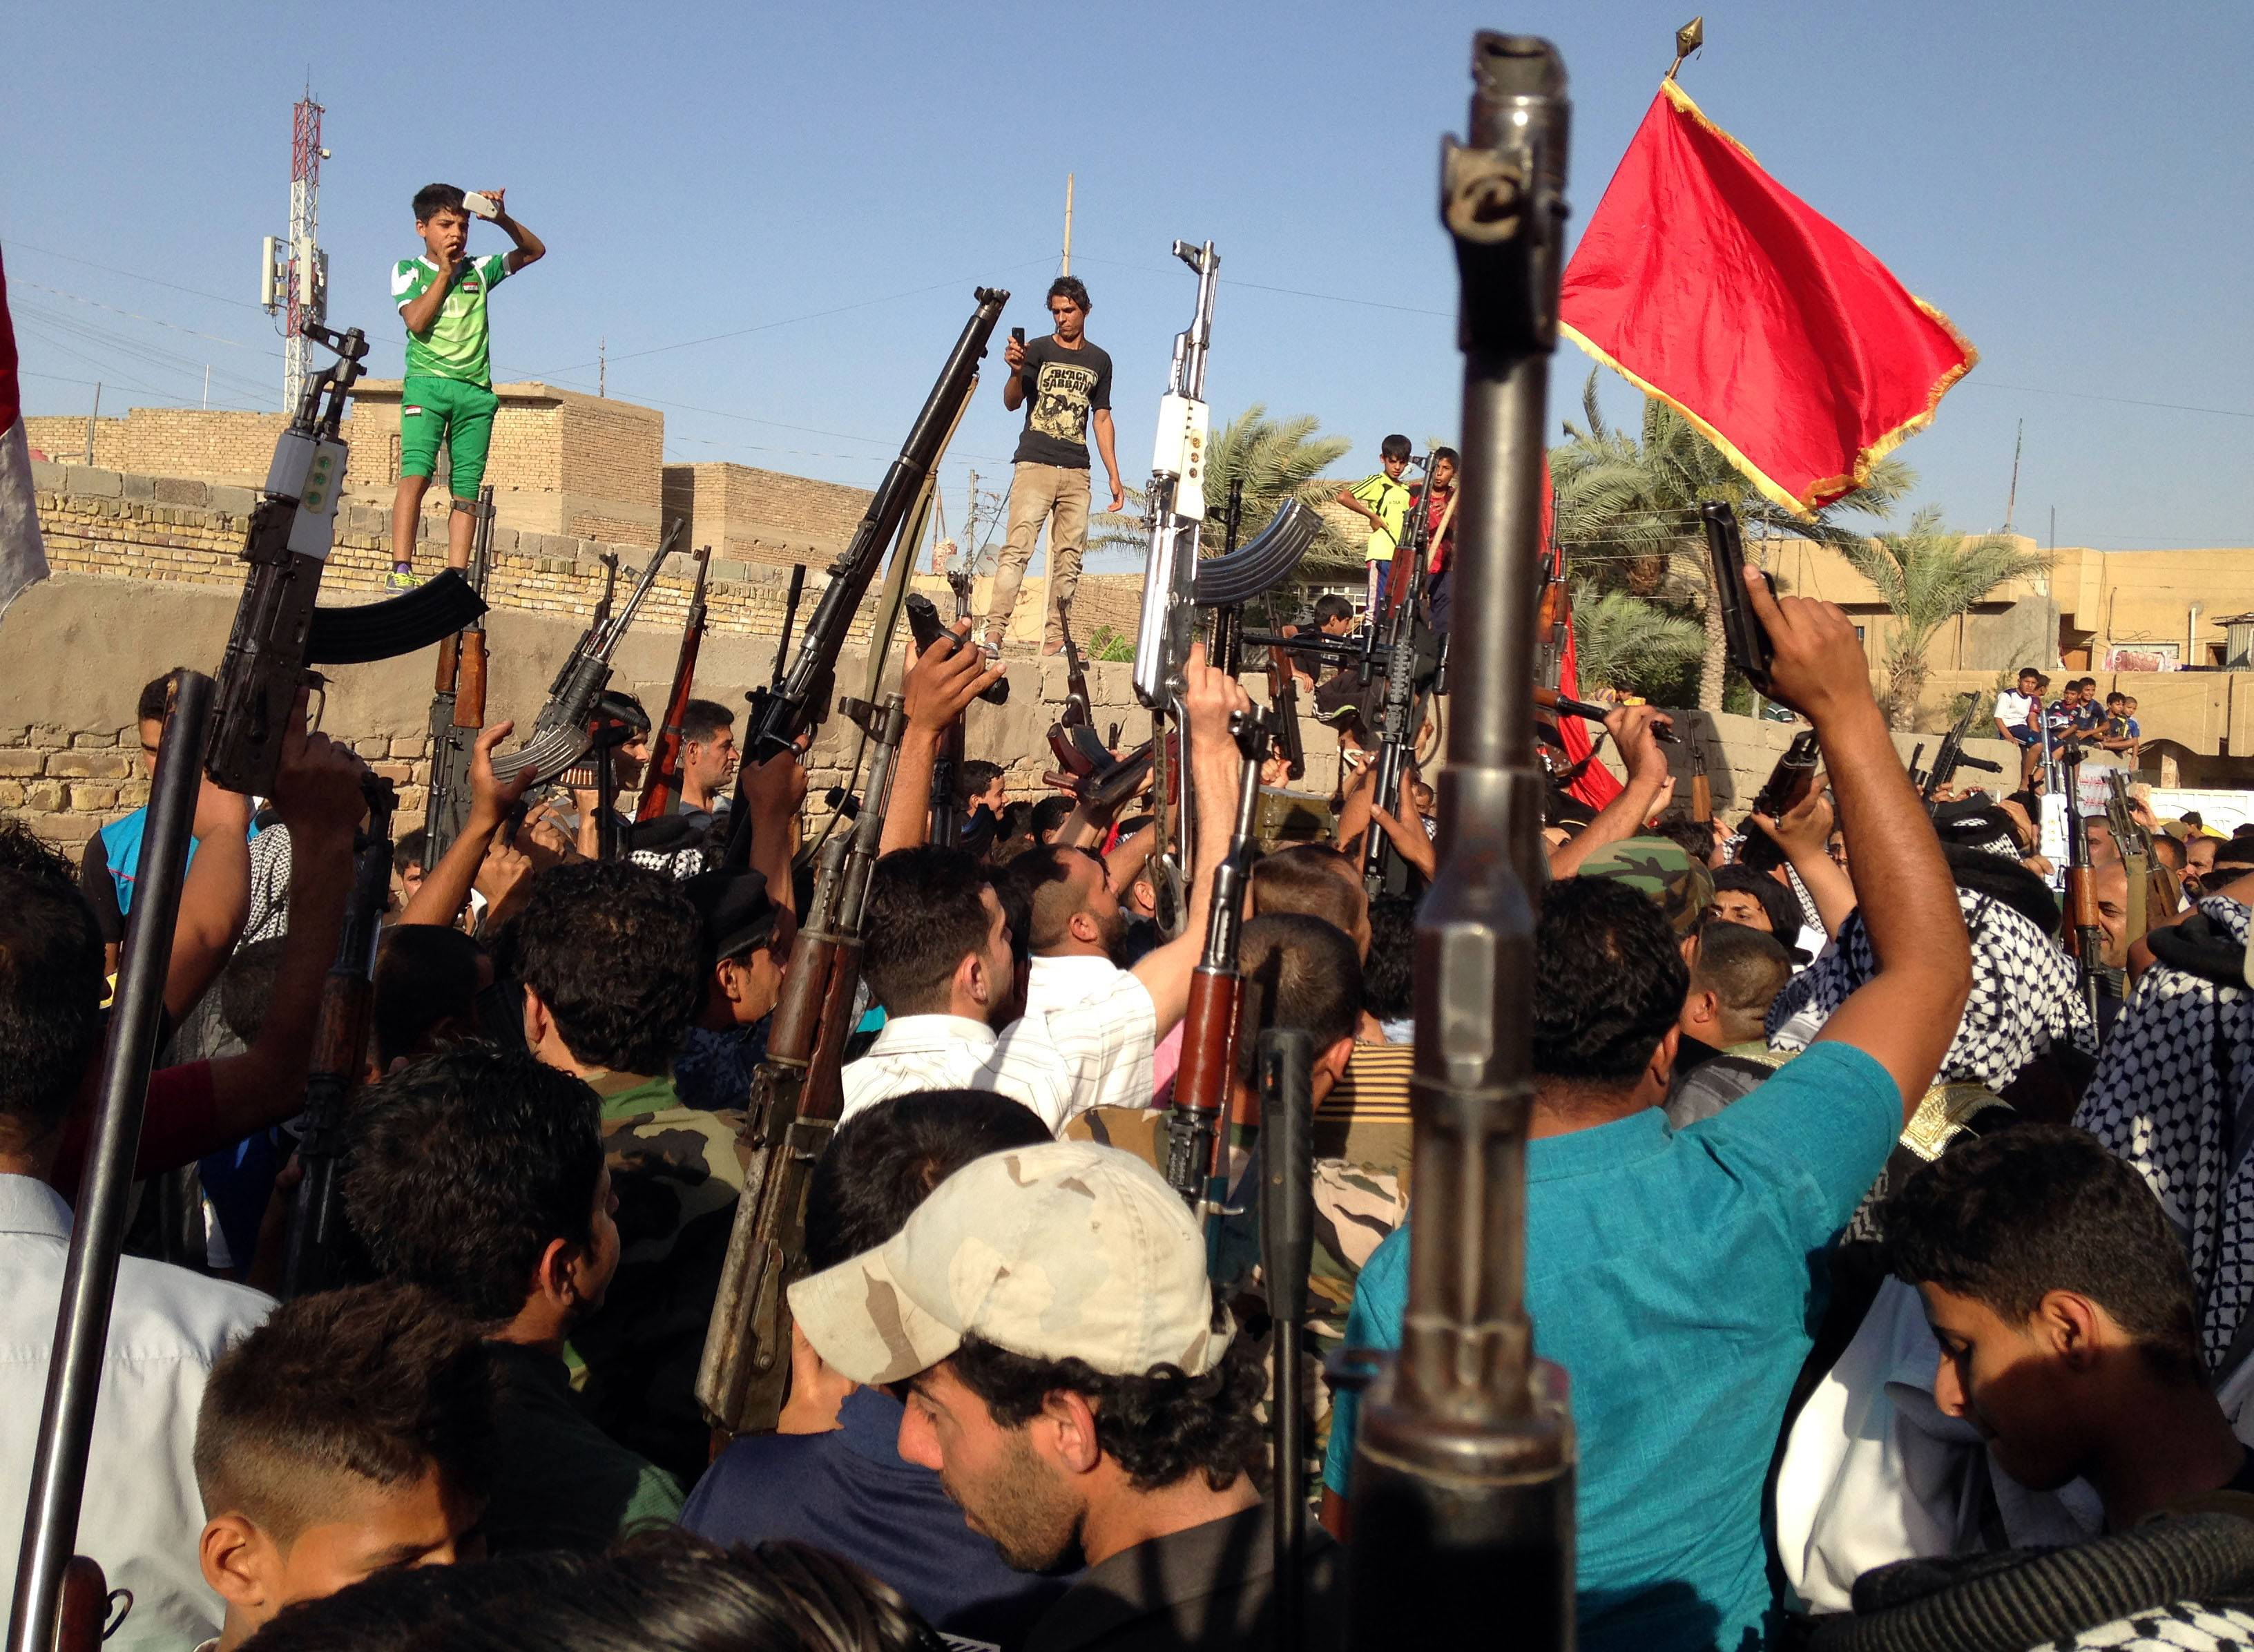 Shiite tribal fighters raise their weapons and chant slogans against the al-Qaida-inspired Islamic State of Iraq and the Levant (ISIL) in the east Baghdad neighborhood of Kamaliya, Iraq, Sunday, June 15, 2014. Emboldened by a call to arms by the top Shiite cleric, Iranian-backed militias have moved quickly to the center of Iraq's political landscape, spearheading what its Shiite majority sees as a fight for survival against Sunni militants who control of large swaths of territory north of Baghdad.